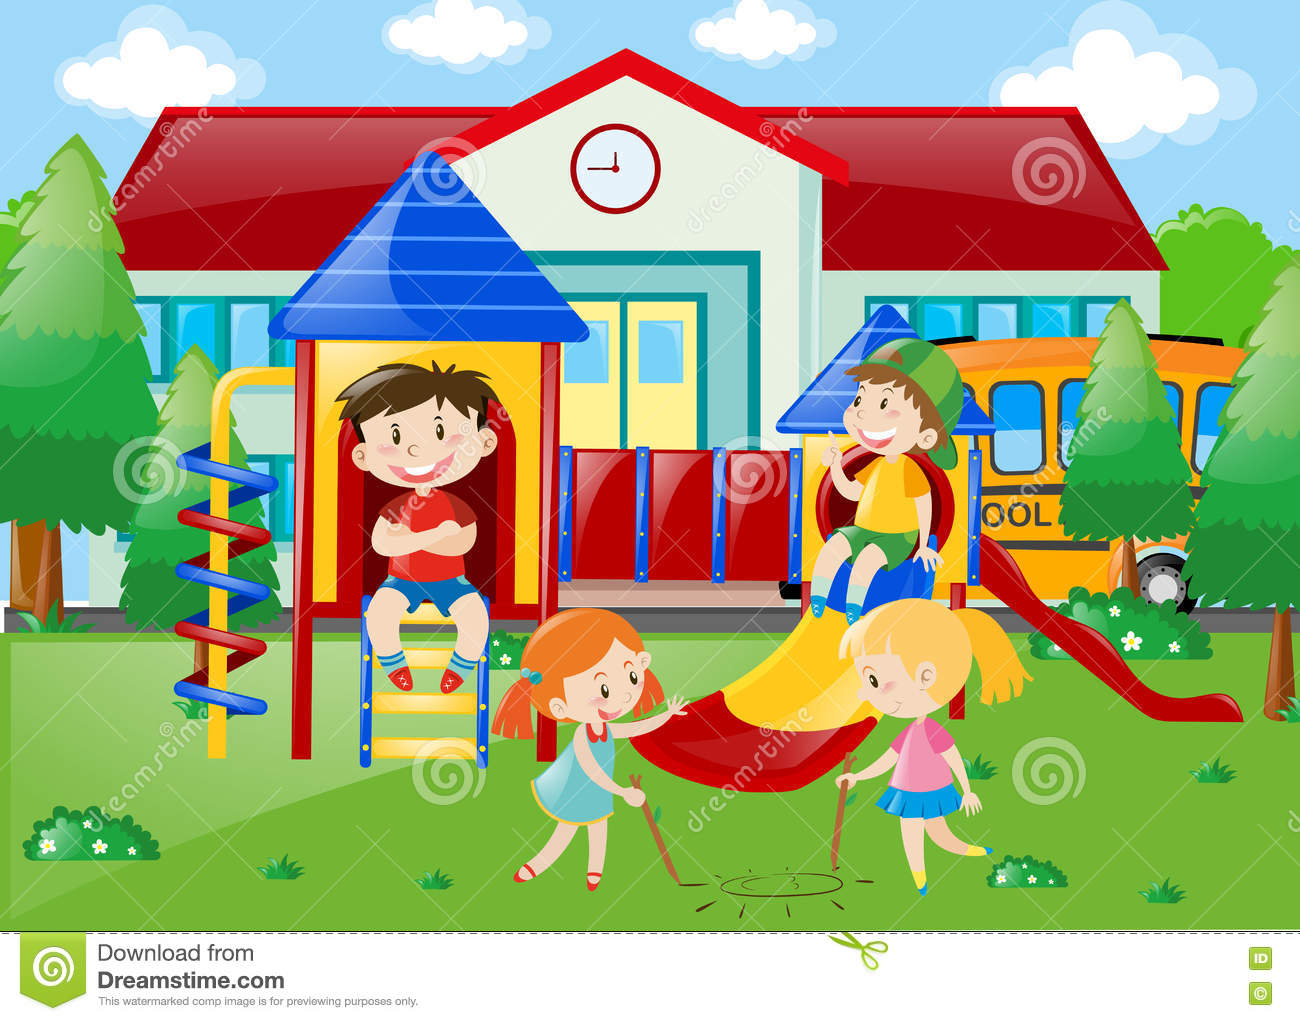 school recess clipart - photo #19